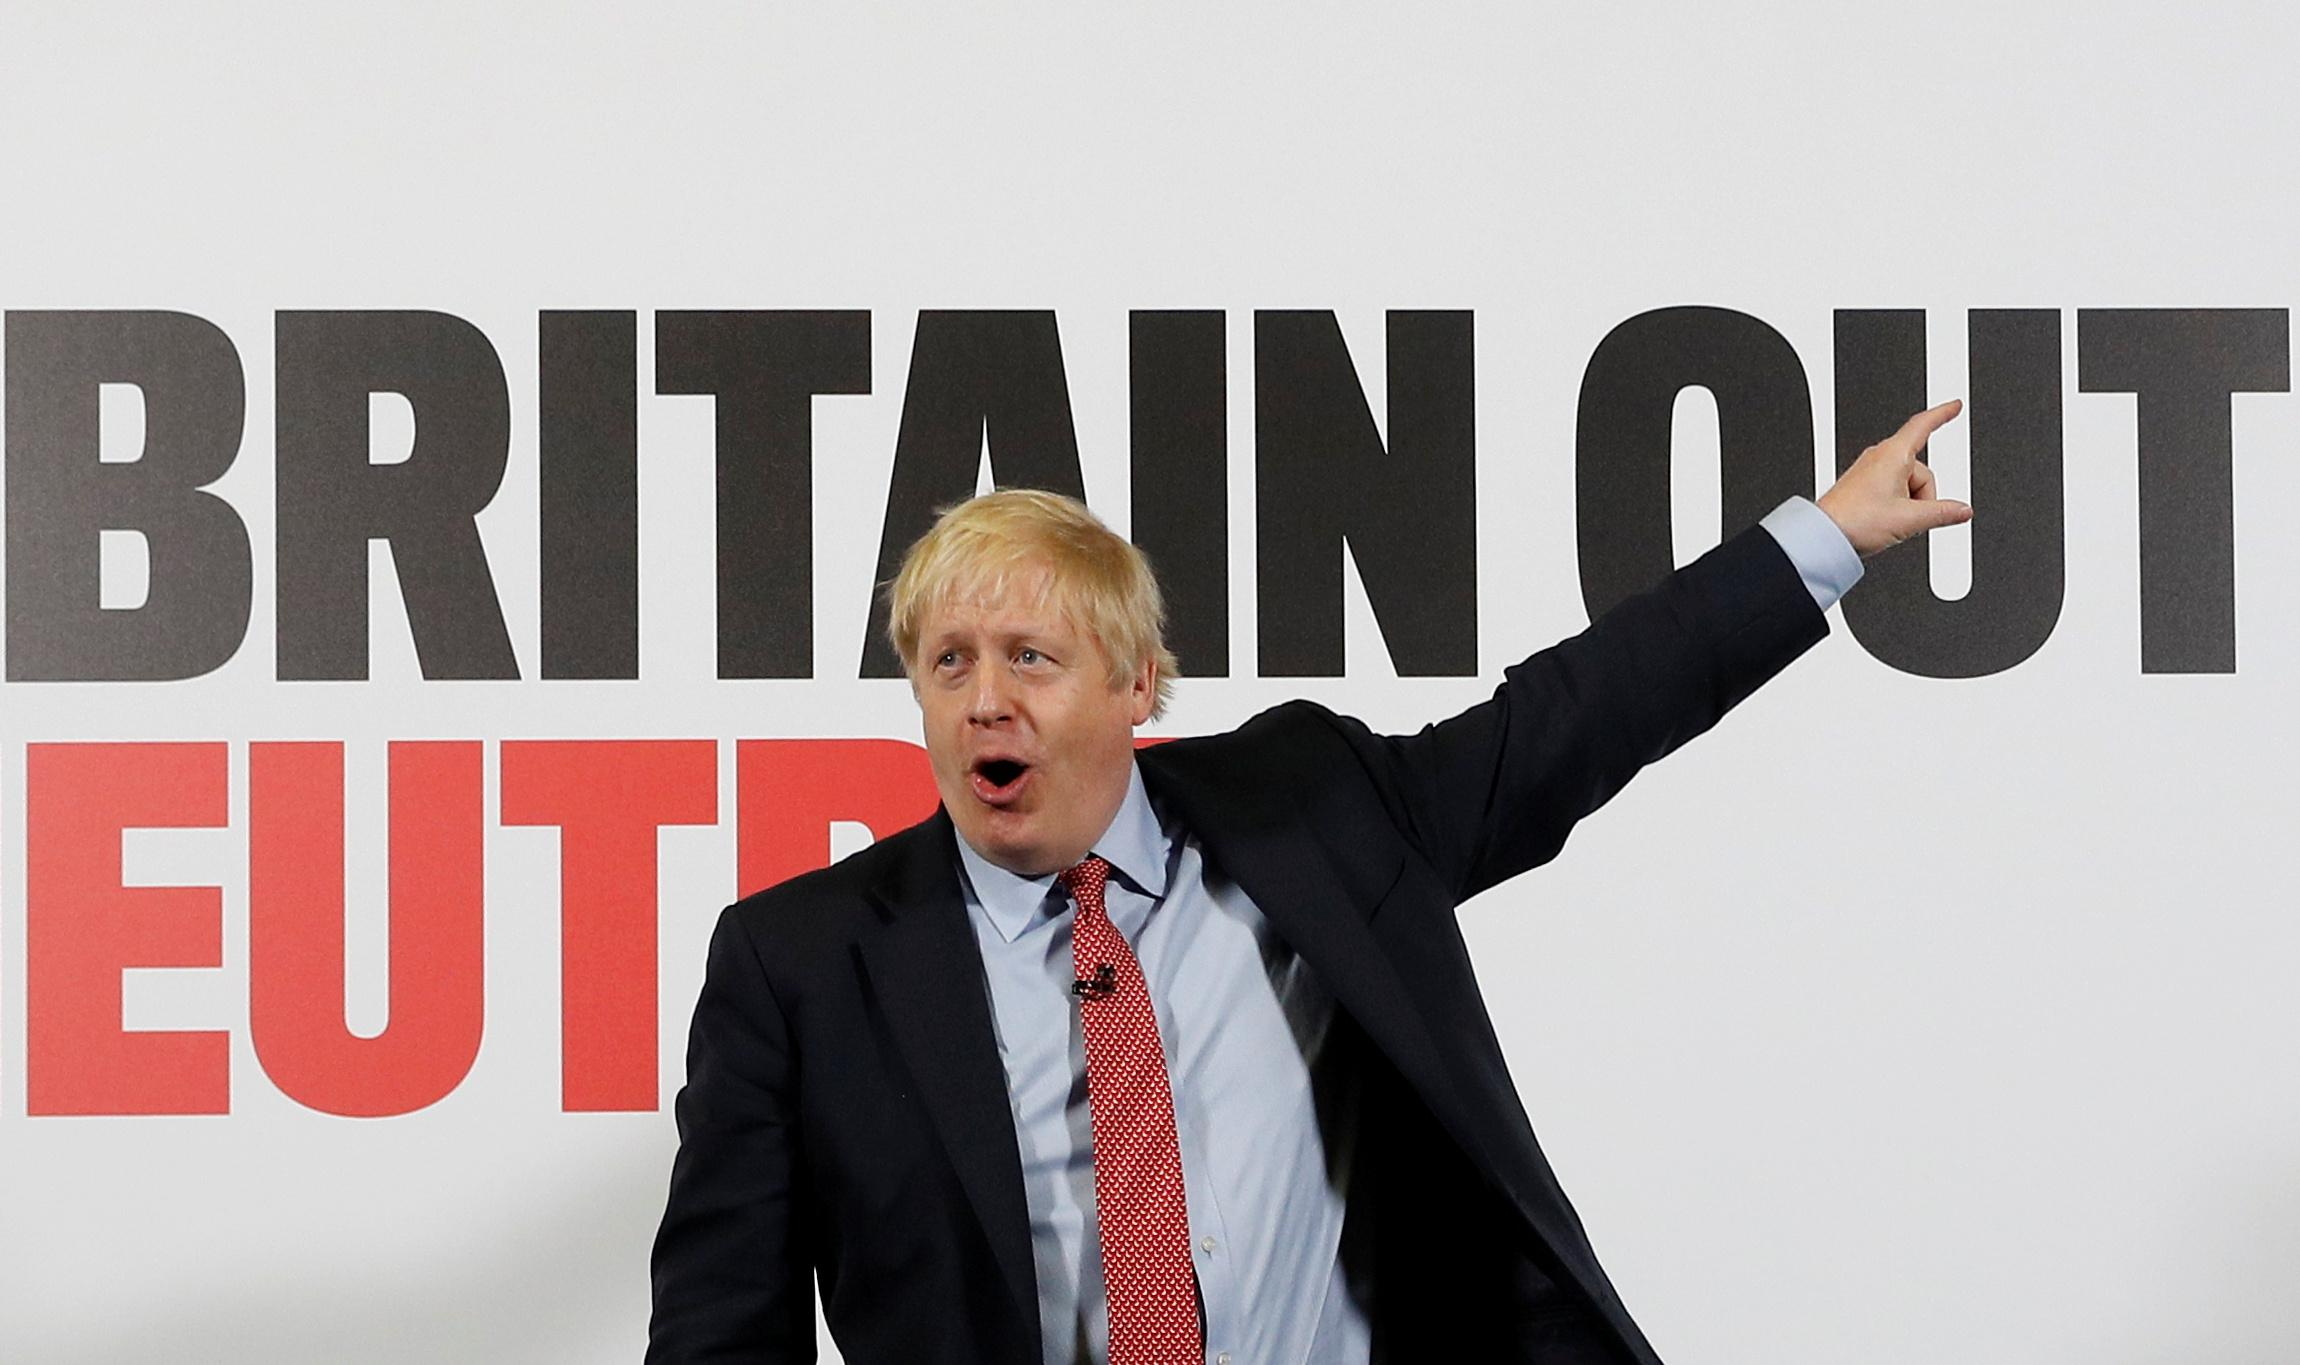 Naughtiest sin? PM Johnson admits cycling on the pavement